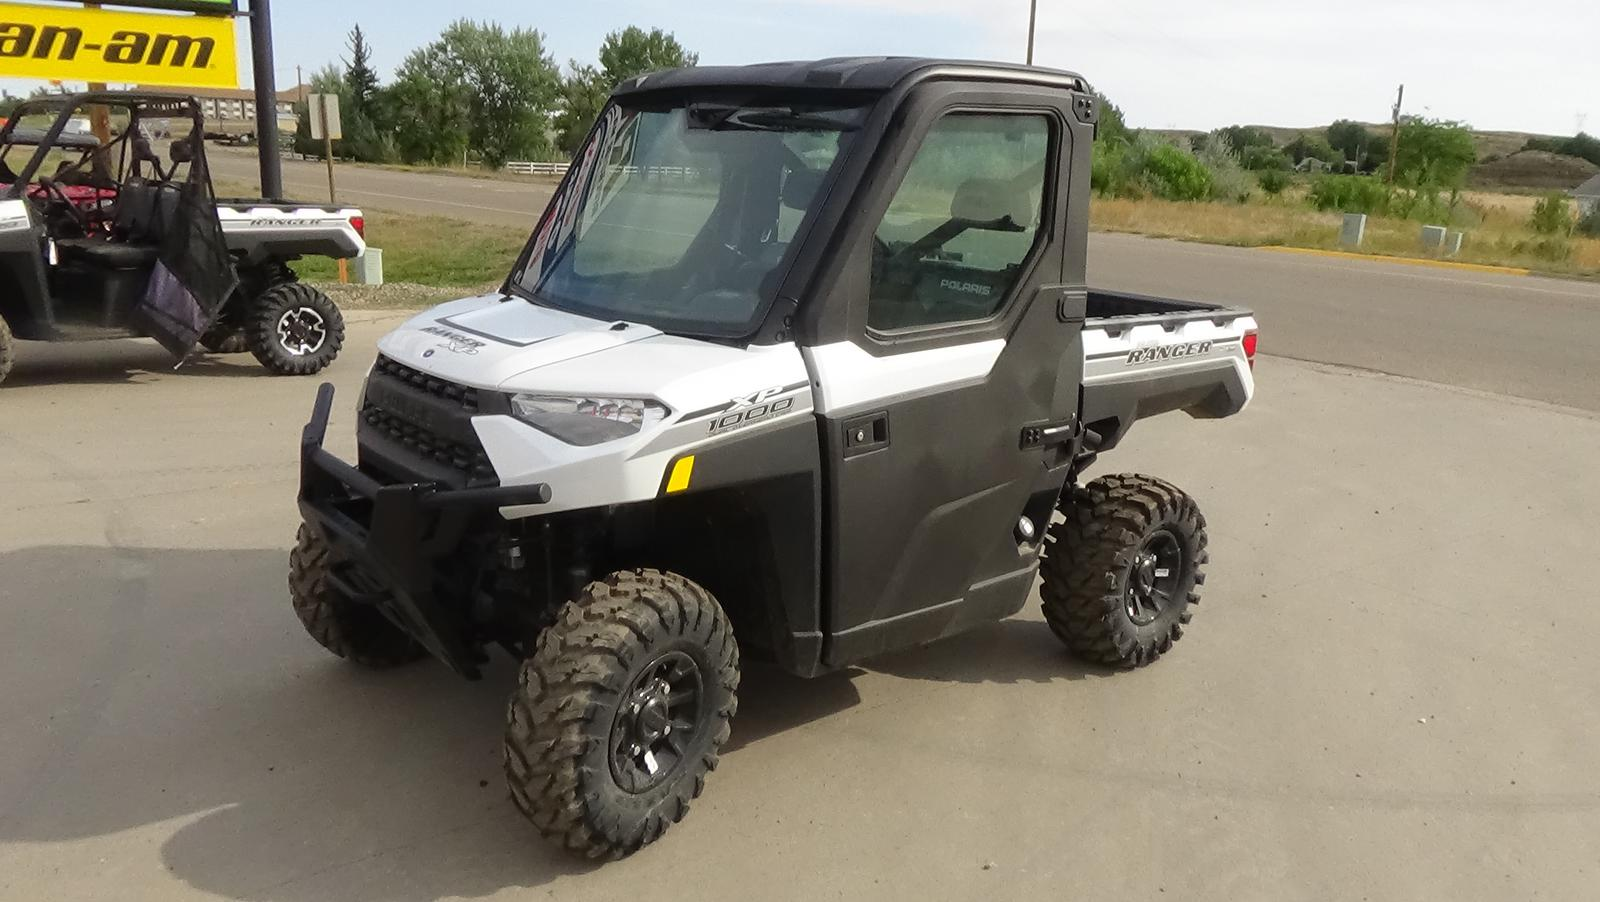 2019 polaris industries ranger xp� 1000 eps northstar edition - white